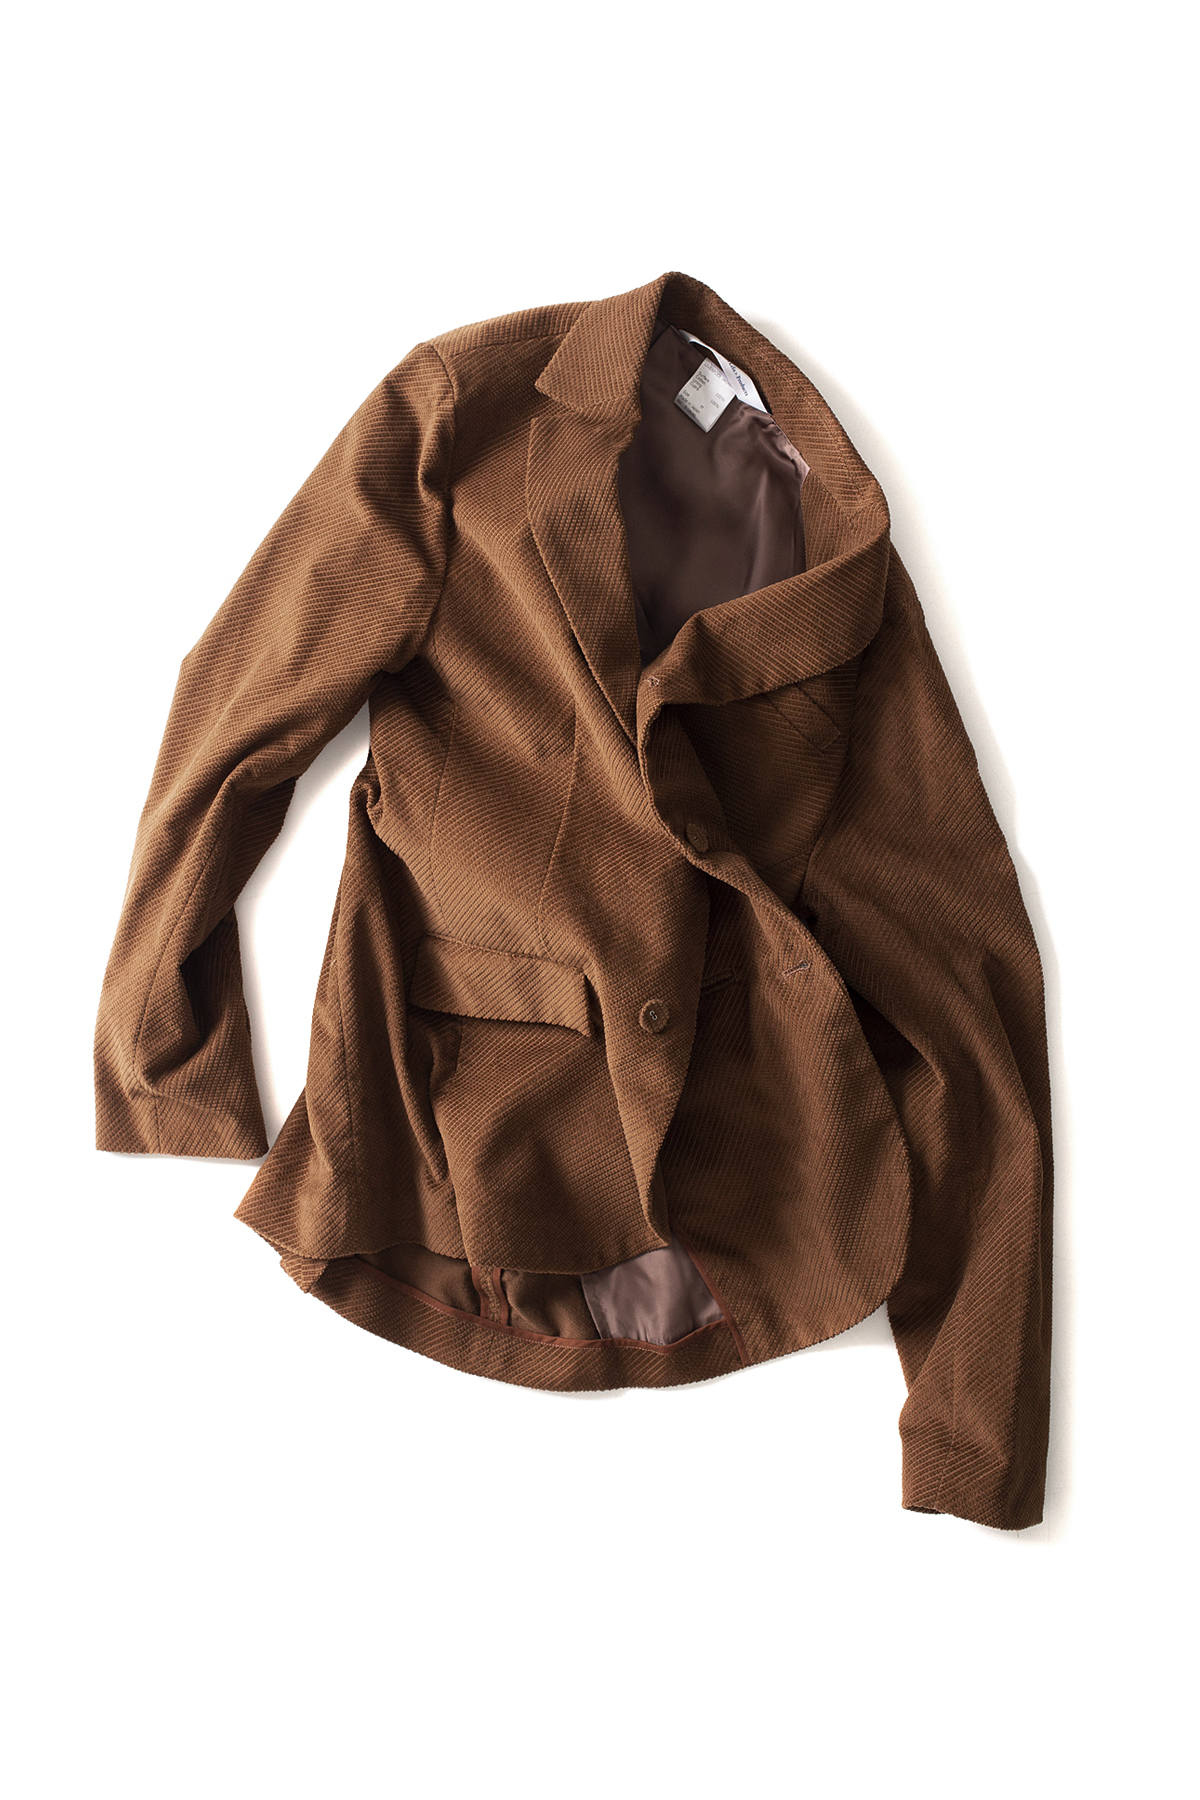 EEL : Liverpool Jacket (Brown)